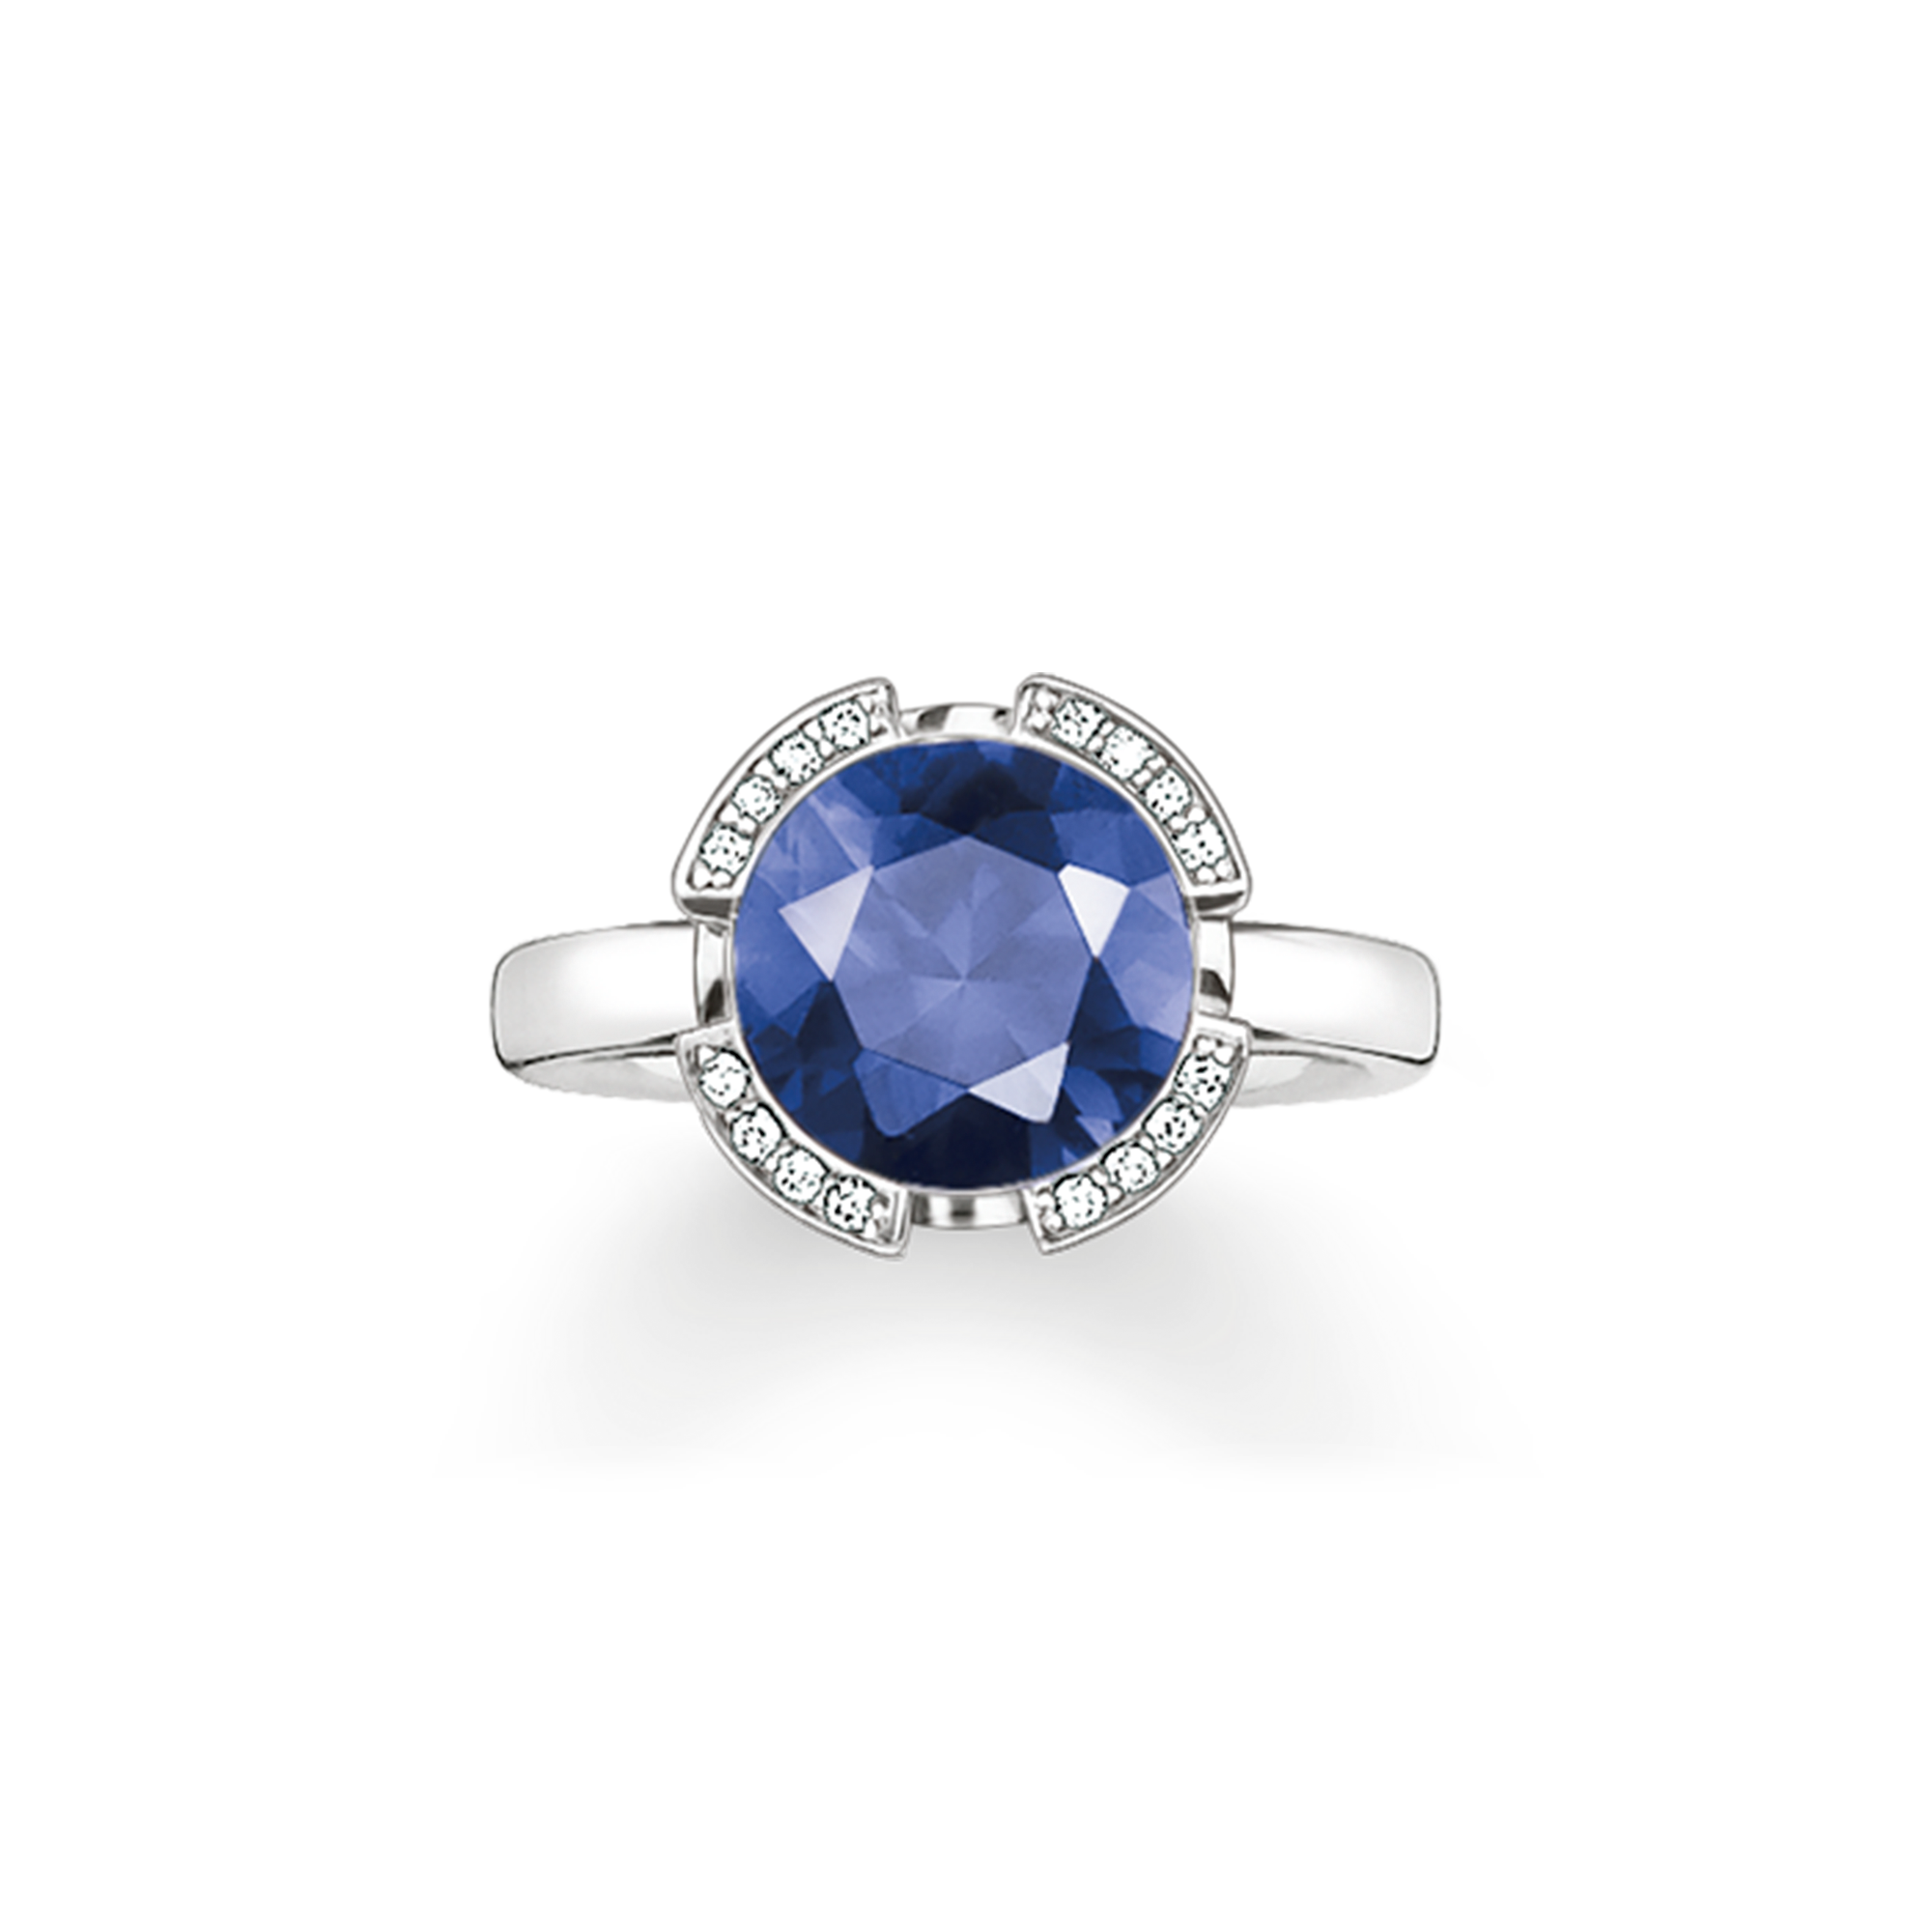 Thomas Sabo - Ring blau - 1